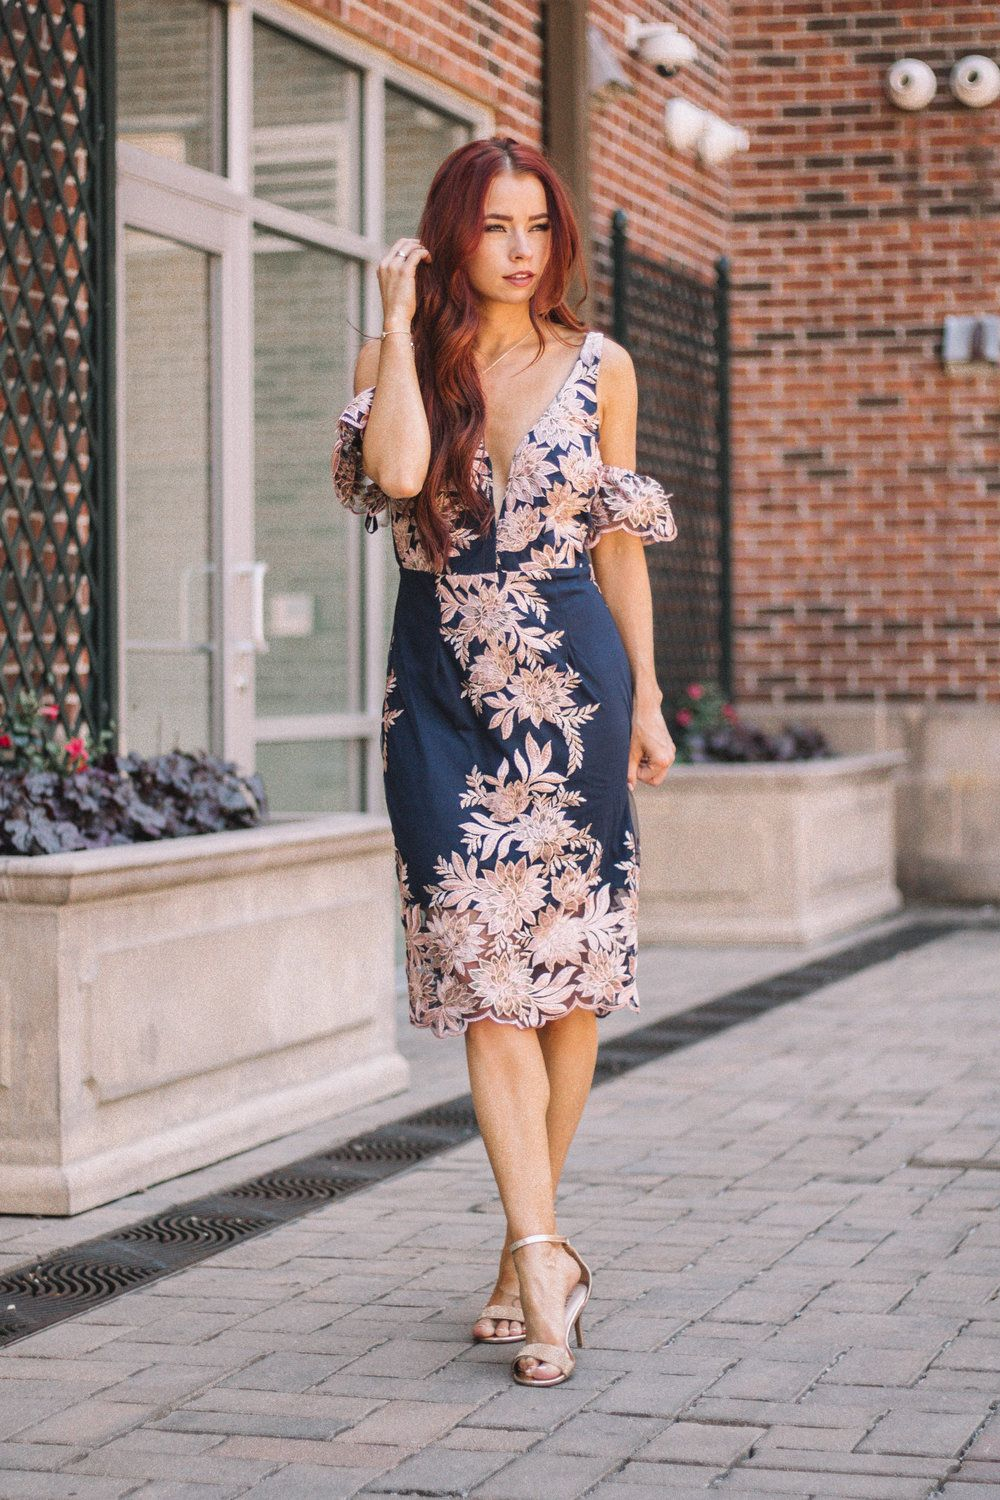 Dresses to wear to a wedding as a guest in april  Cute Summer Wedding Guest Dresses with Ella Maeus  Wedding Ideas